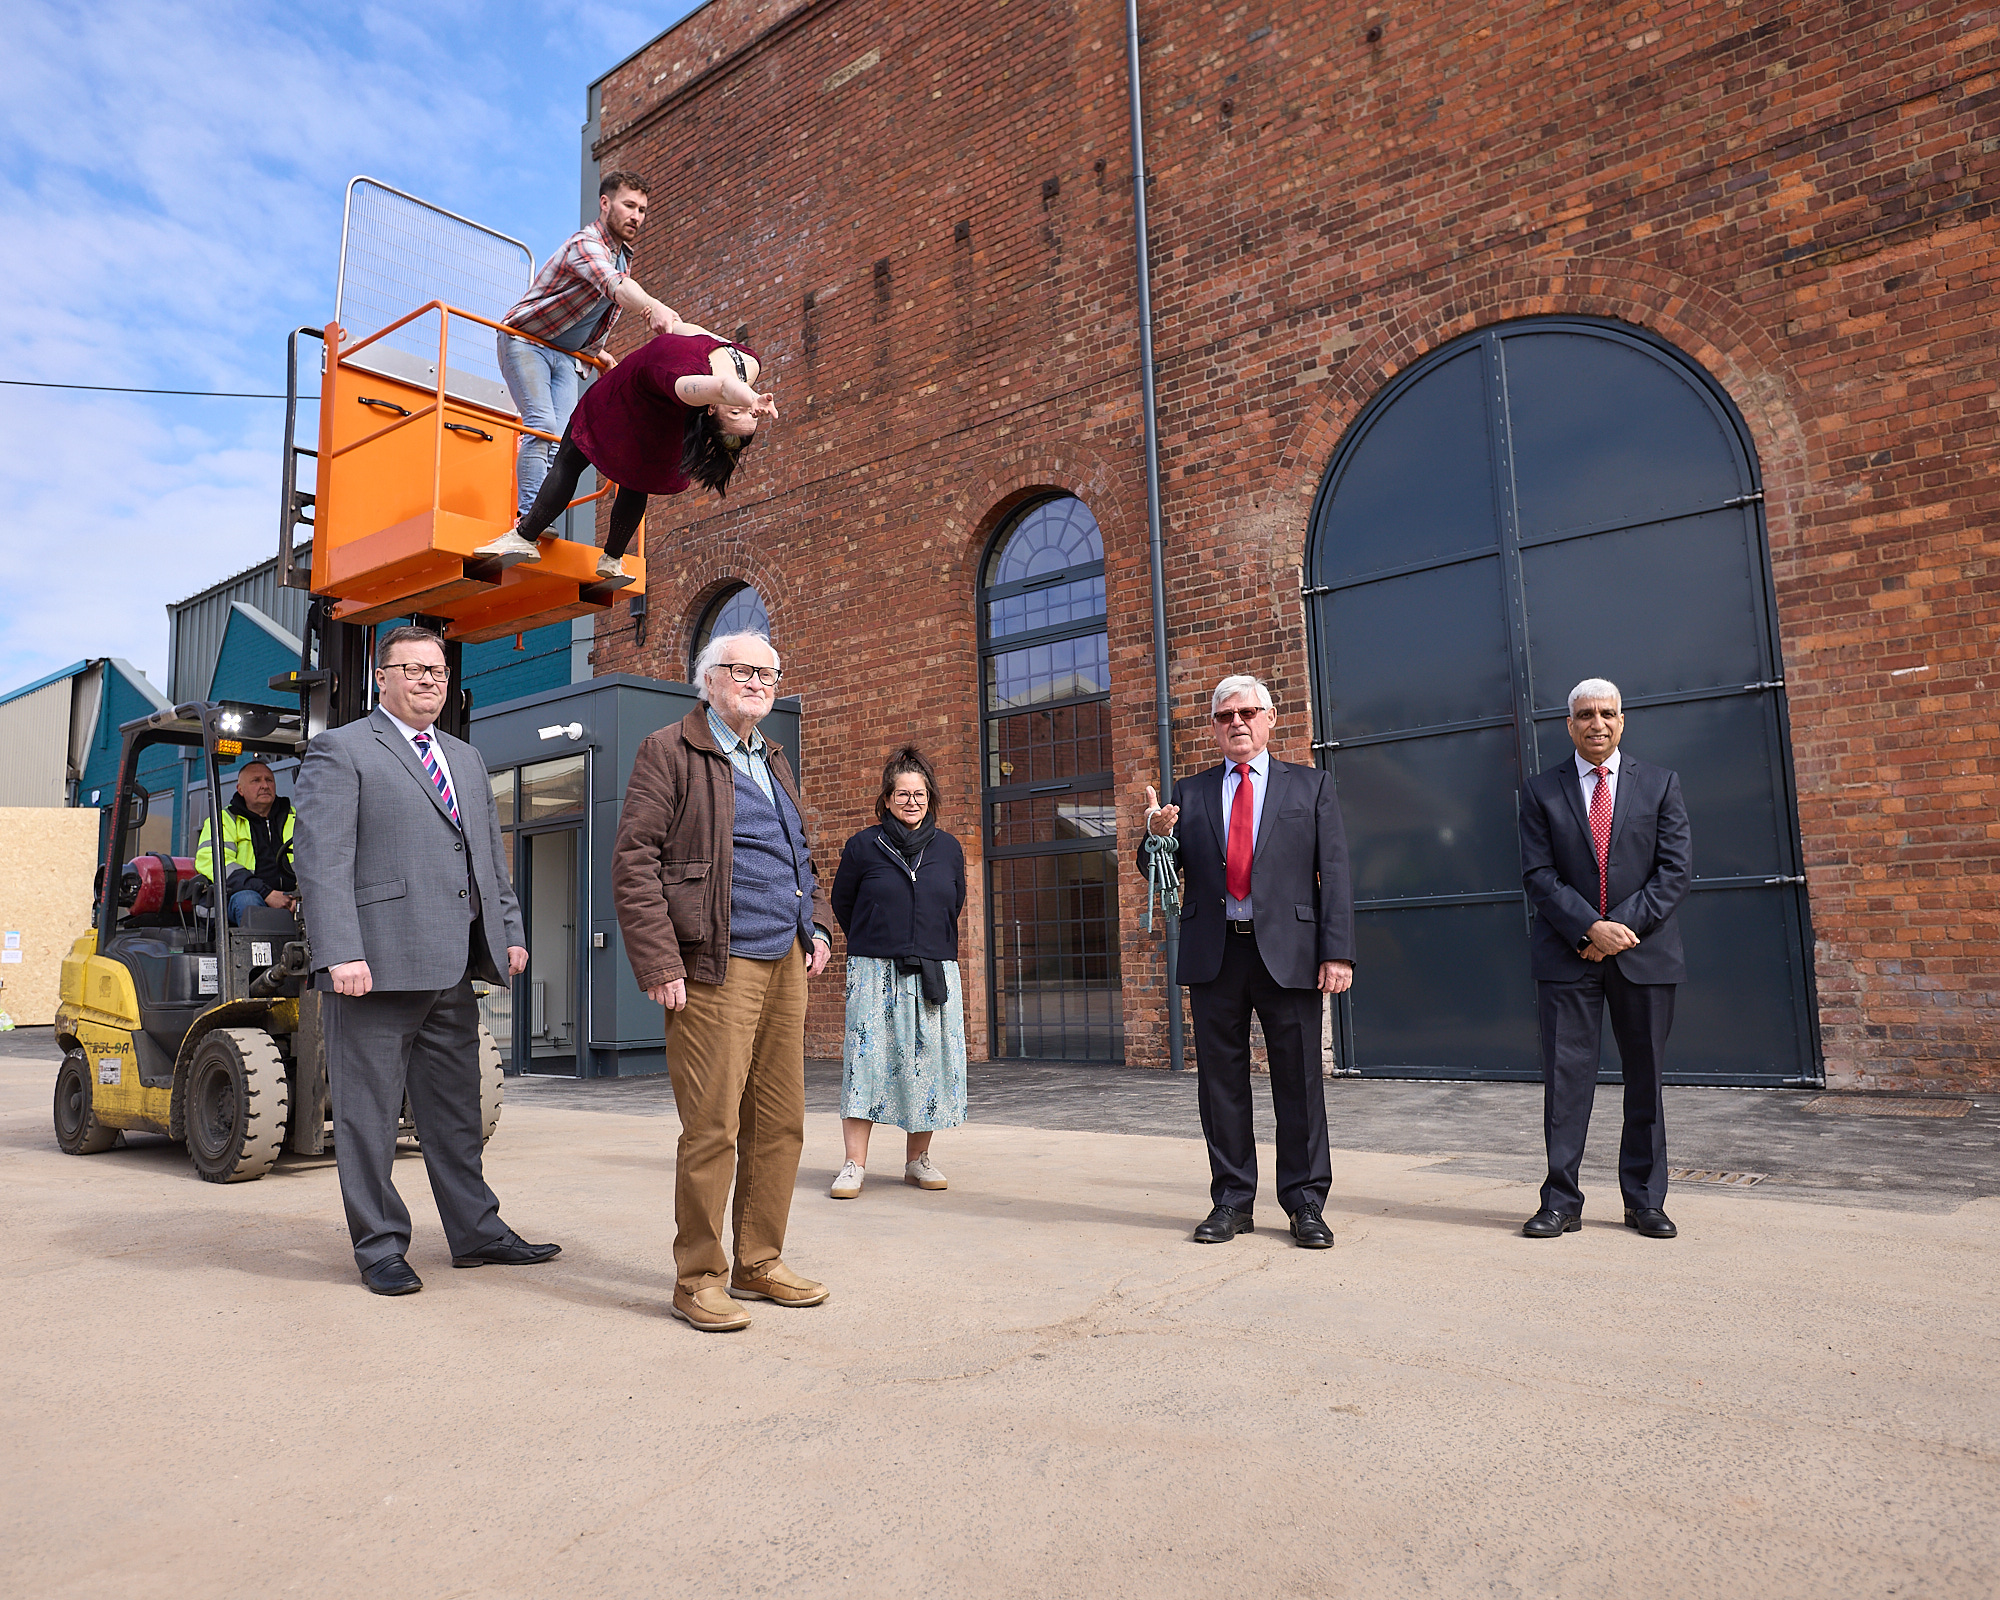 Aerialists Luka Owen and Daniel Connor perform with a fork lift truck. Standing in front of the truck are Roger Medwell, Chenine Bhathena, Robert Wigley, David Welsh and Zamurad Hussain